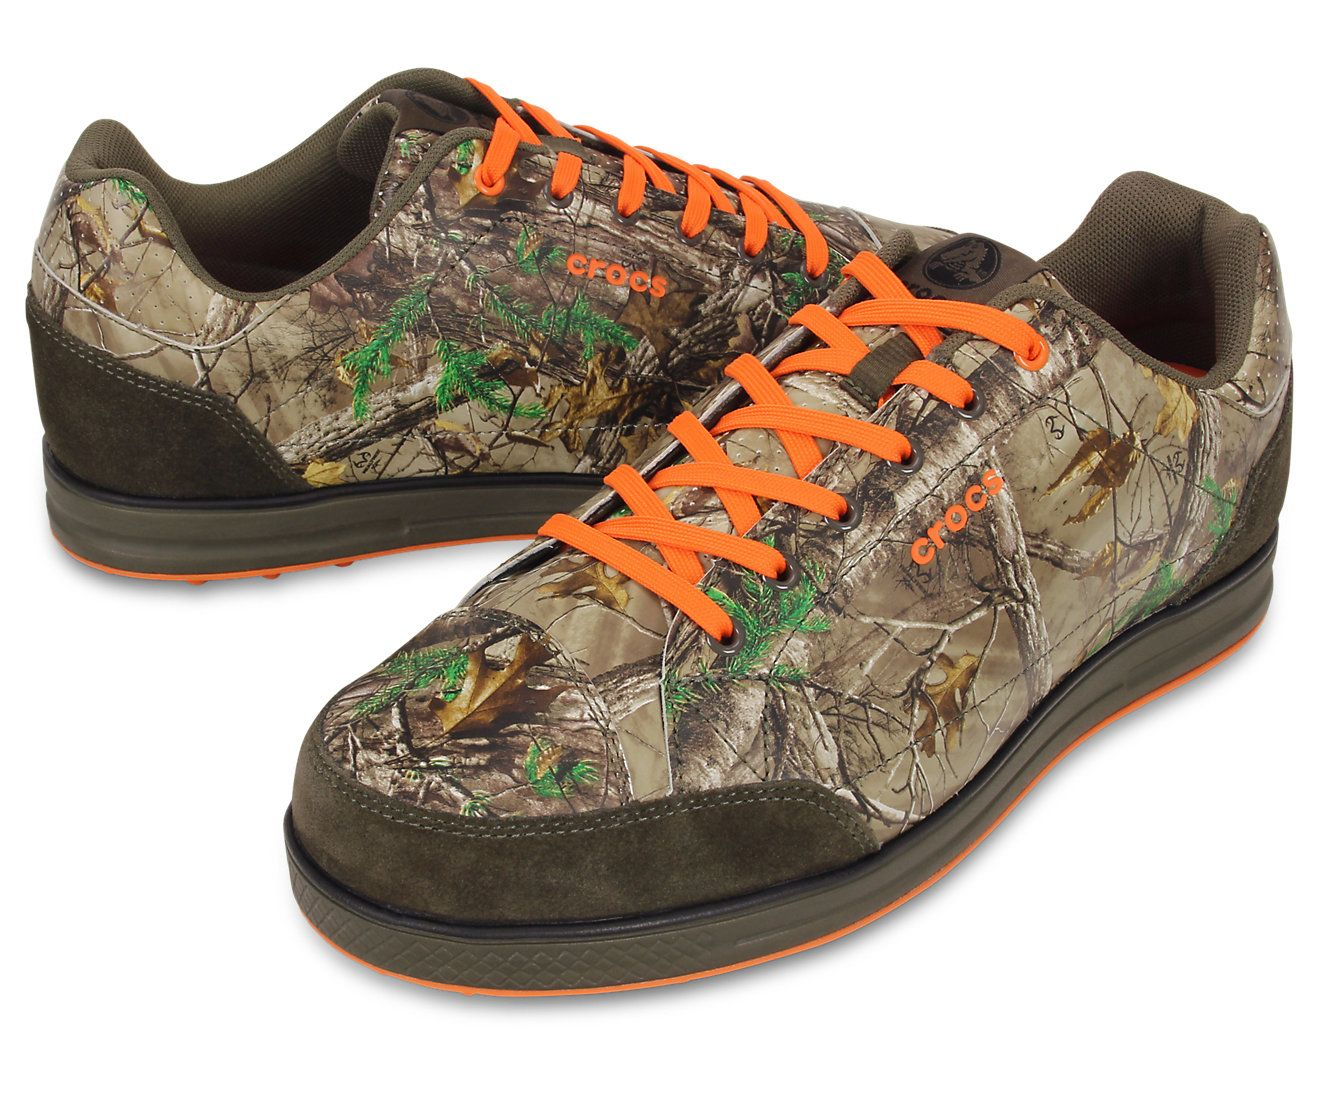 Camo Shoes and Clogs: Realtree Camo Shoes